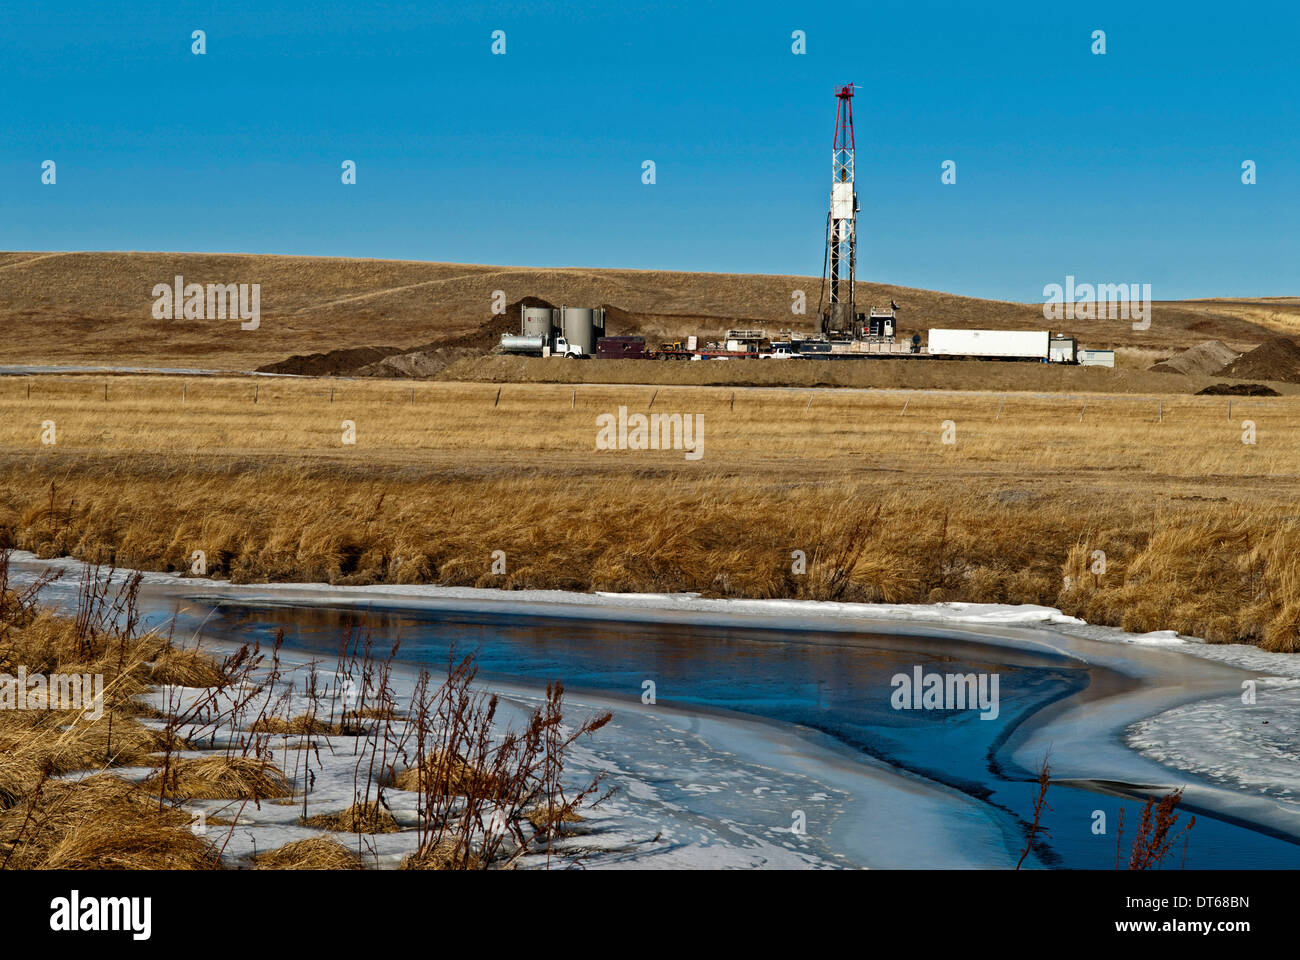 Canada, Alberta, Del Bonita, Fracking near a water source for tight shale oil and gas on the edge of the Bakken play. - Stock Image